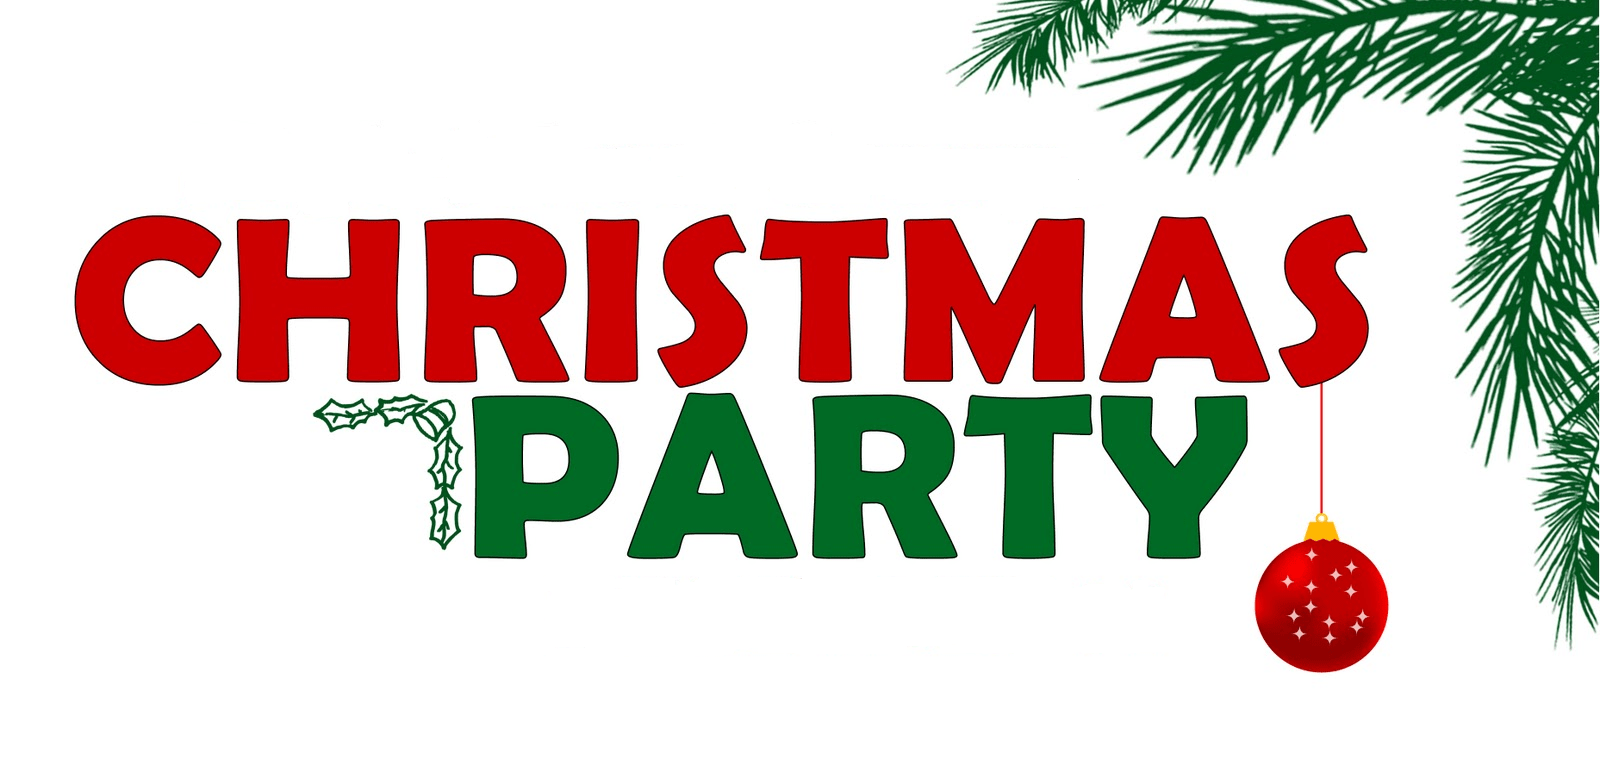 Church Christmas Party Clipart.